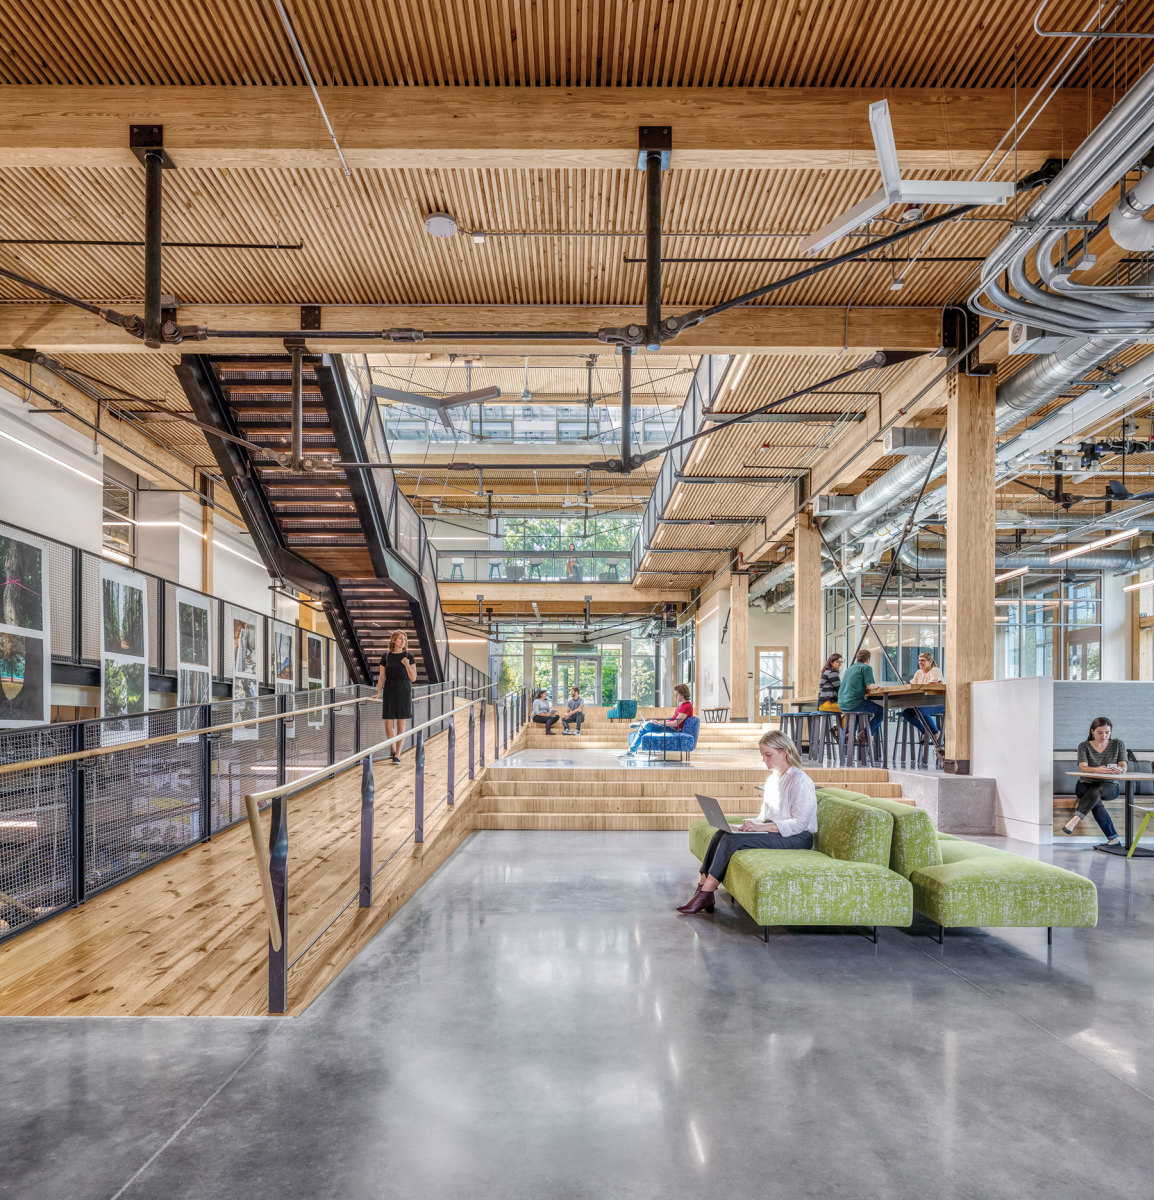 The Kendeda Building forInnovative Sustainable Design, winnerof the Green Building with Wood category Architect: The Miller Hull Partnership,in collaboration with Lord Aeck Sargent, a Katerra  Co. Structural engineer:  Uzun + Case